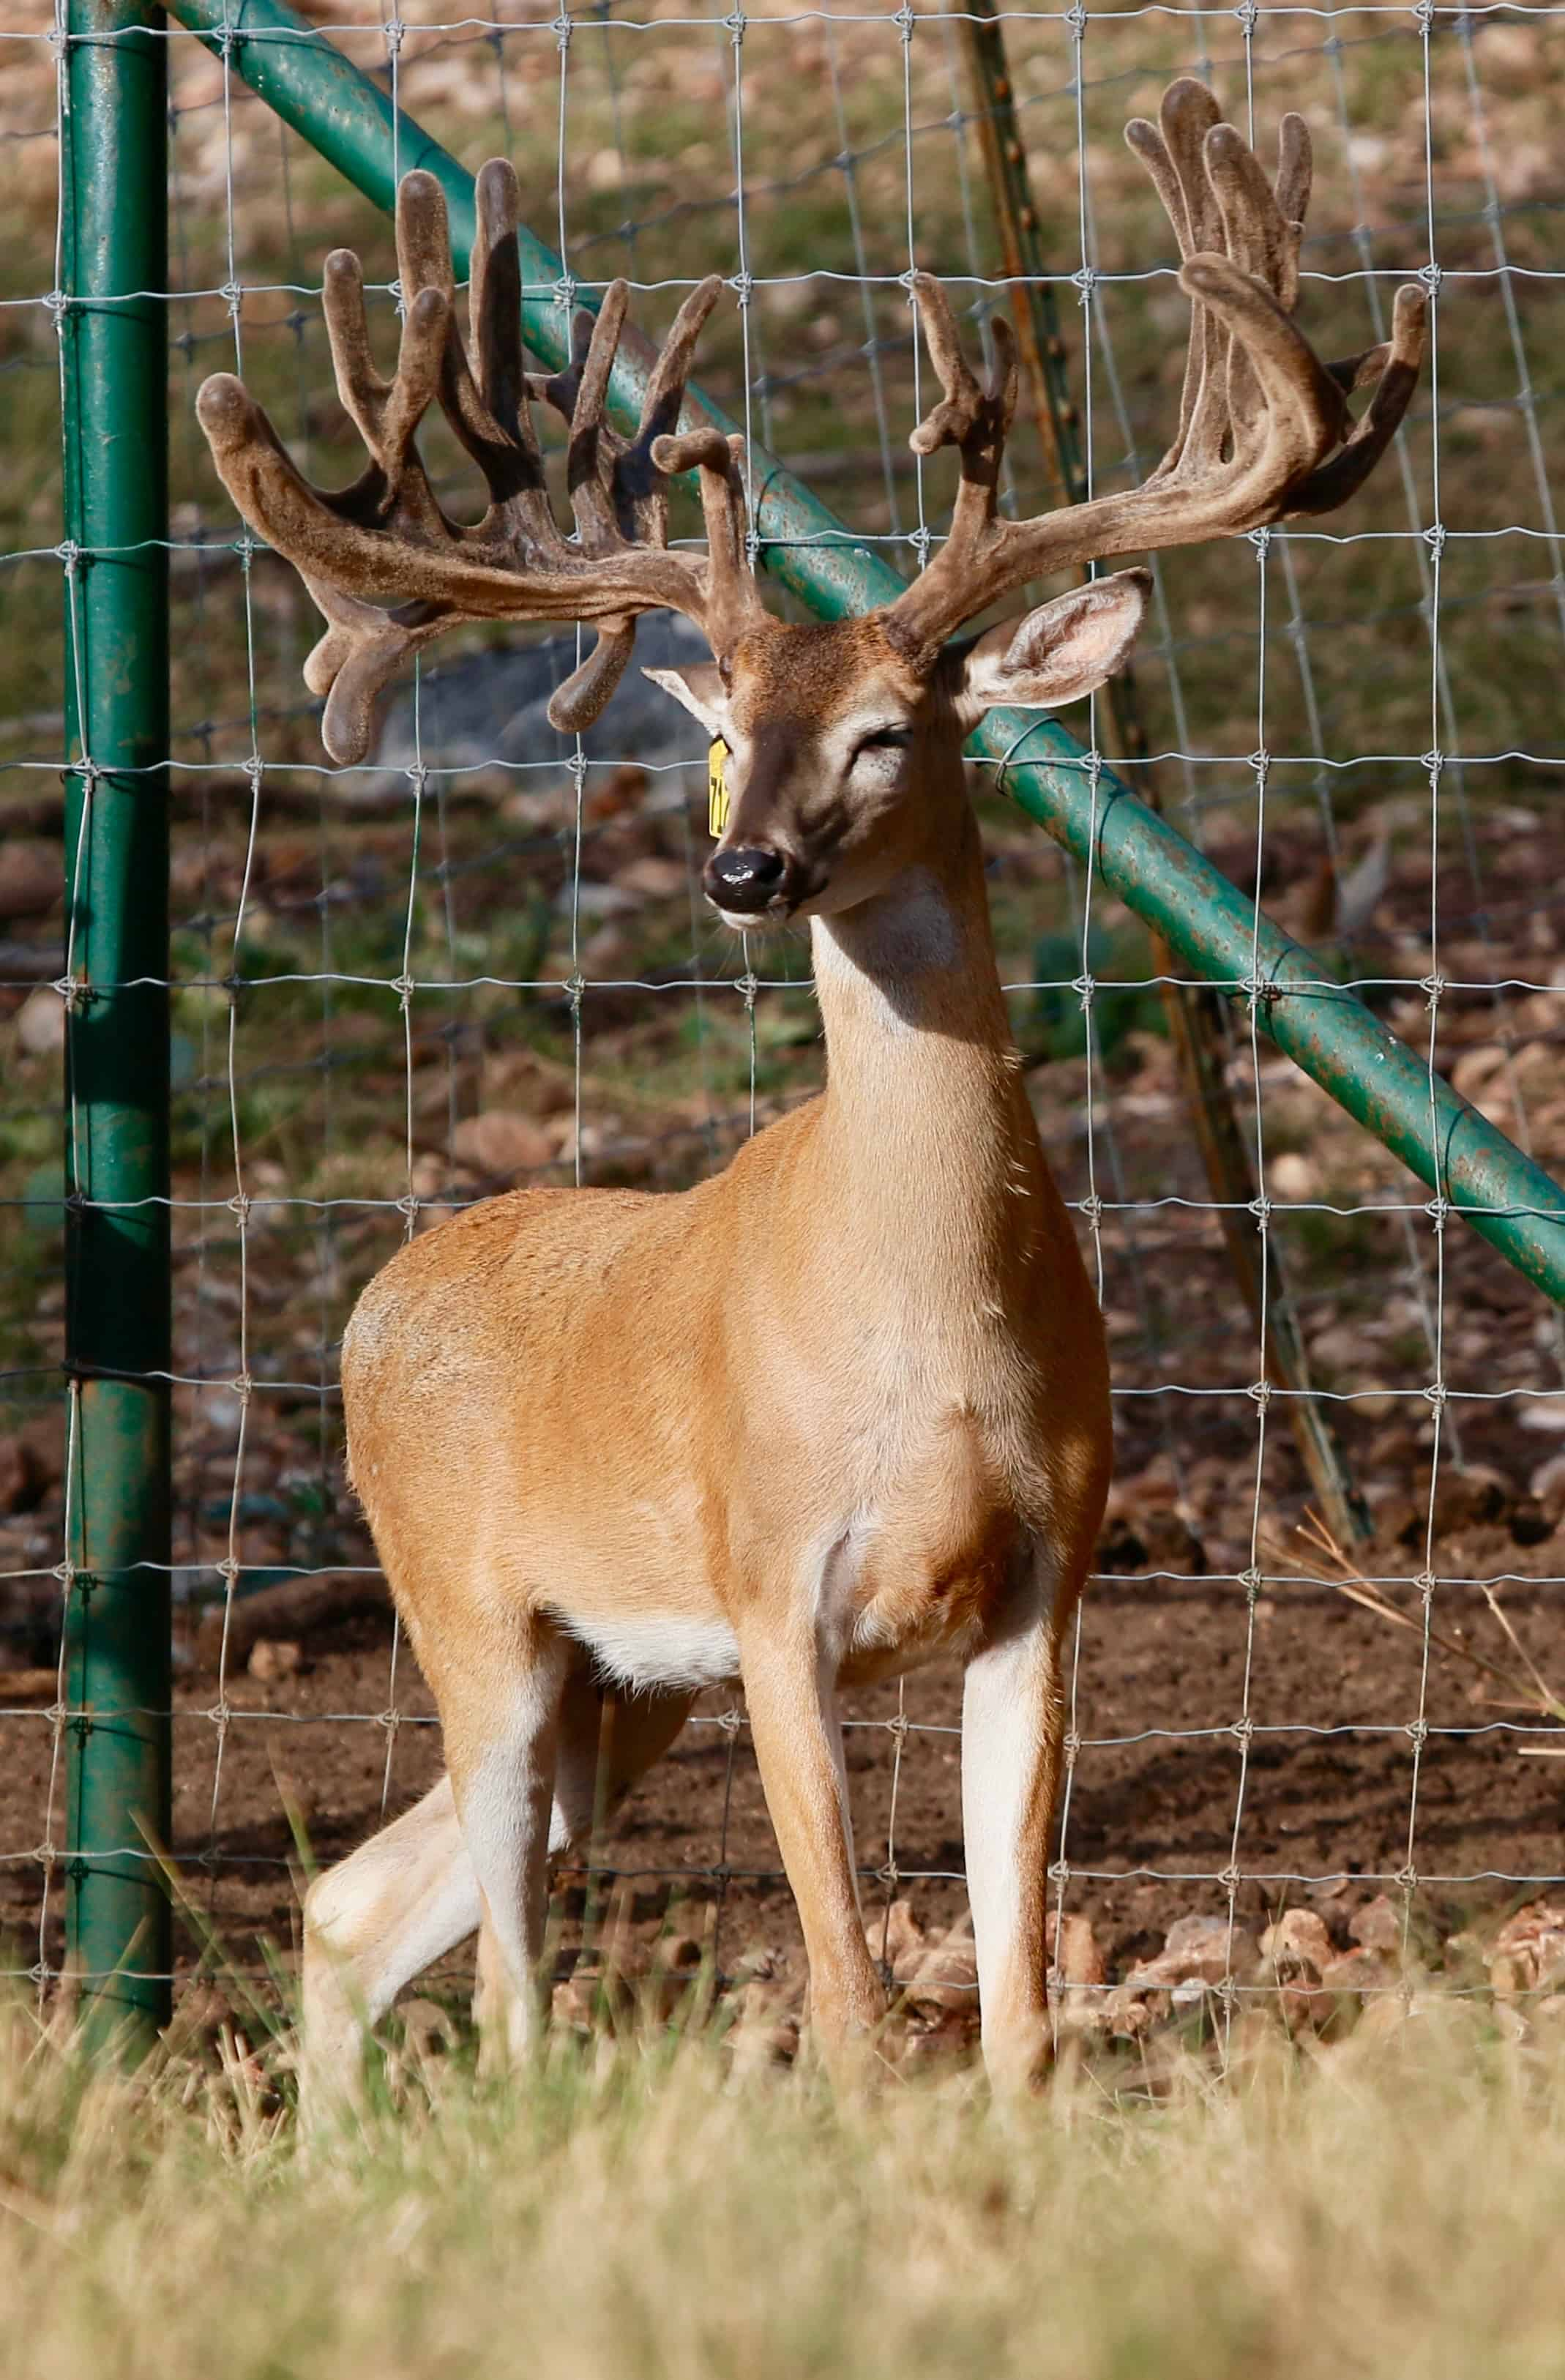 Light duty for our 2yr old whitetail breeder buck 7122. He is a new addition to our Texas deer breeding program and among our Big Texas Typicals, who will also work along side our other deer breeds in our deer for sale listing.